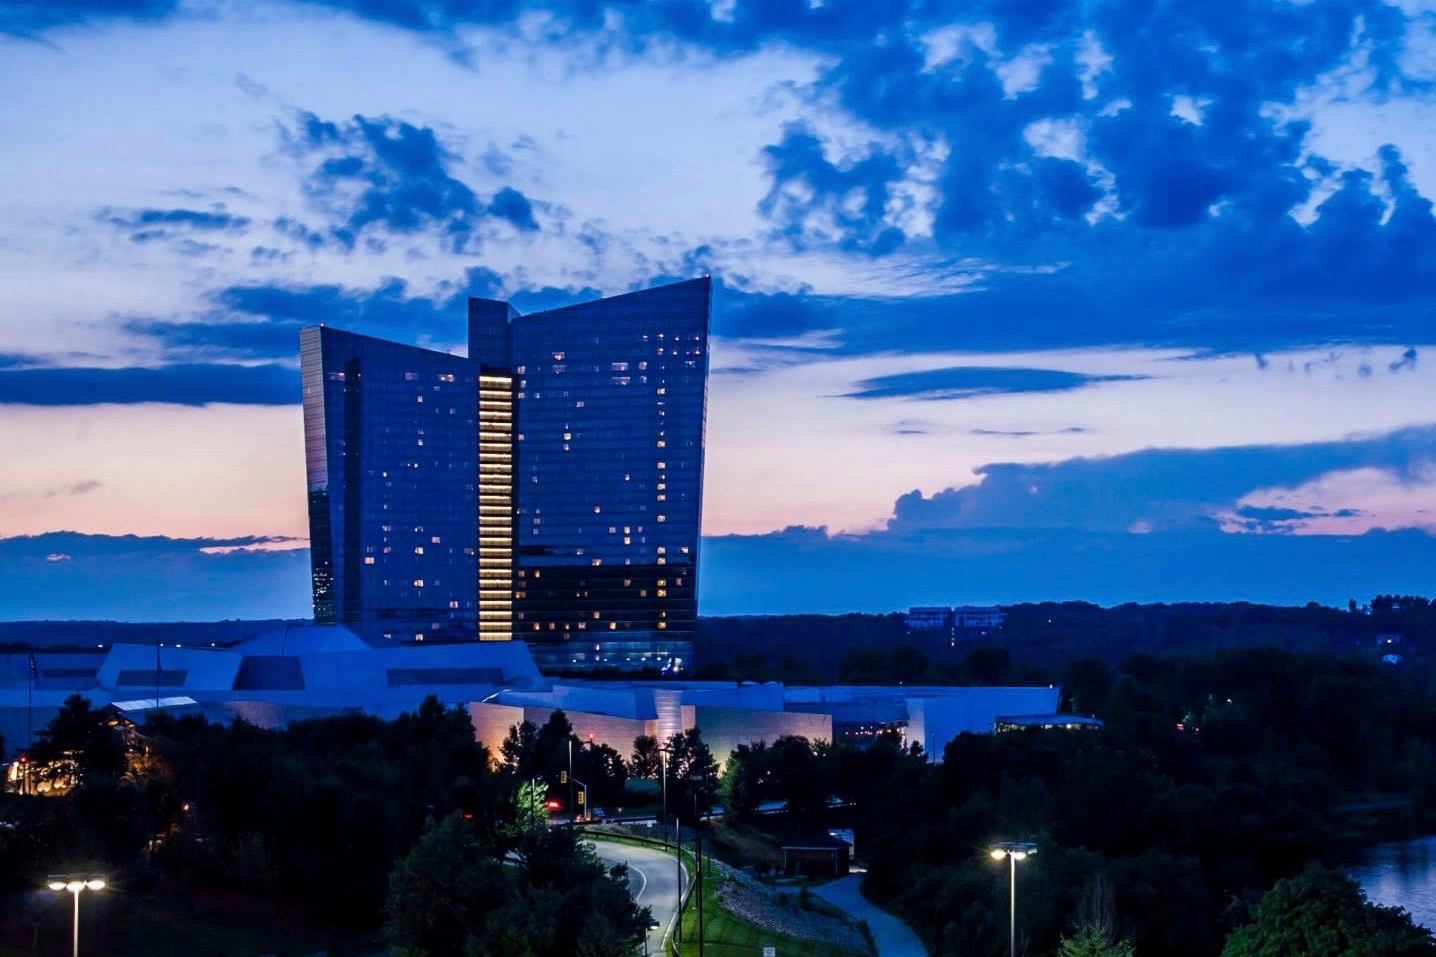 Second employee pleads not guilty to theft at Mohegan Tribe casino